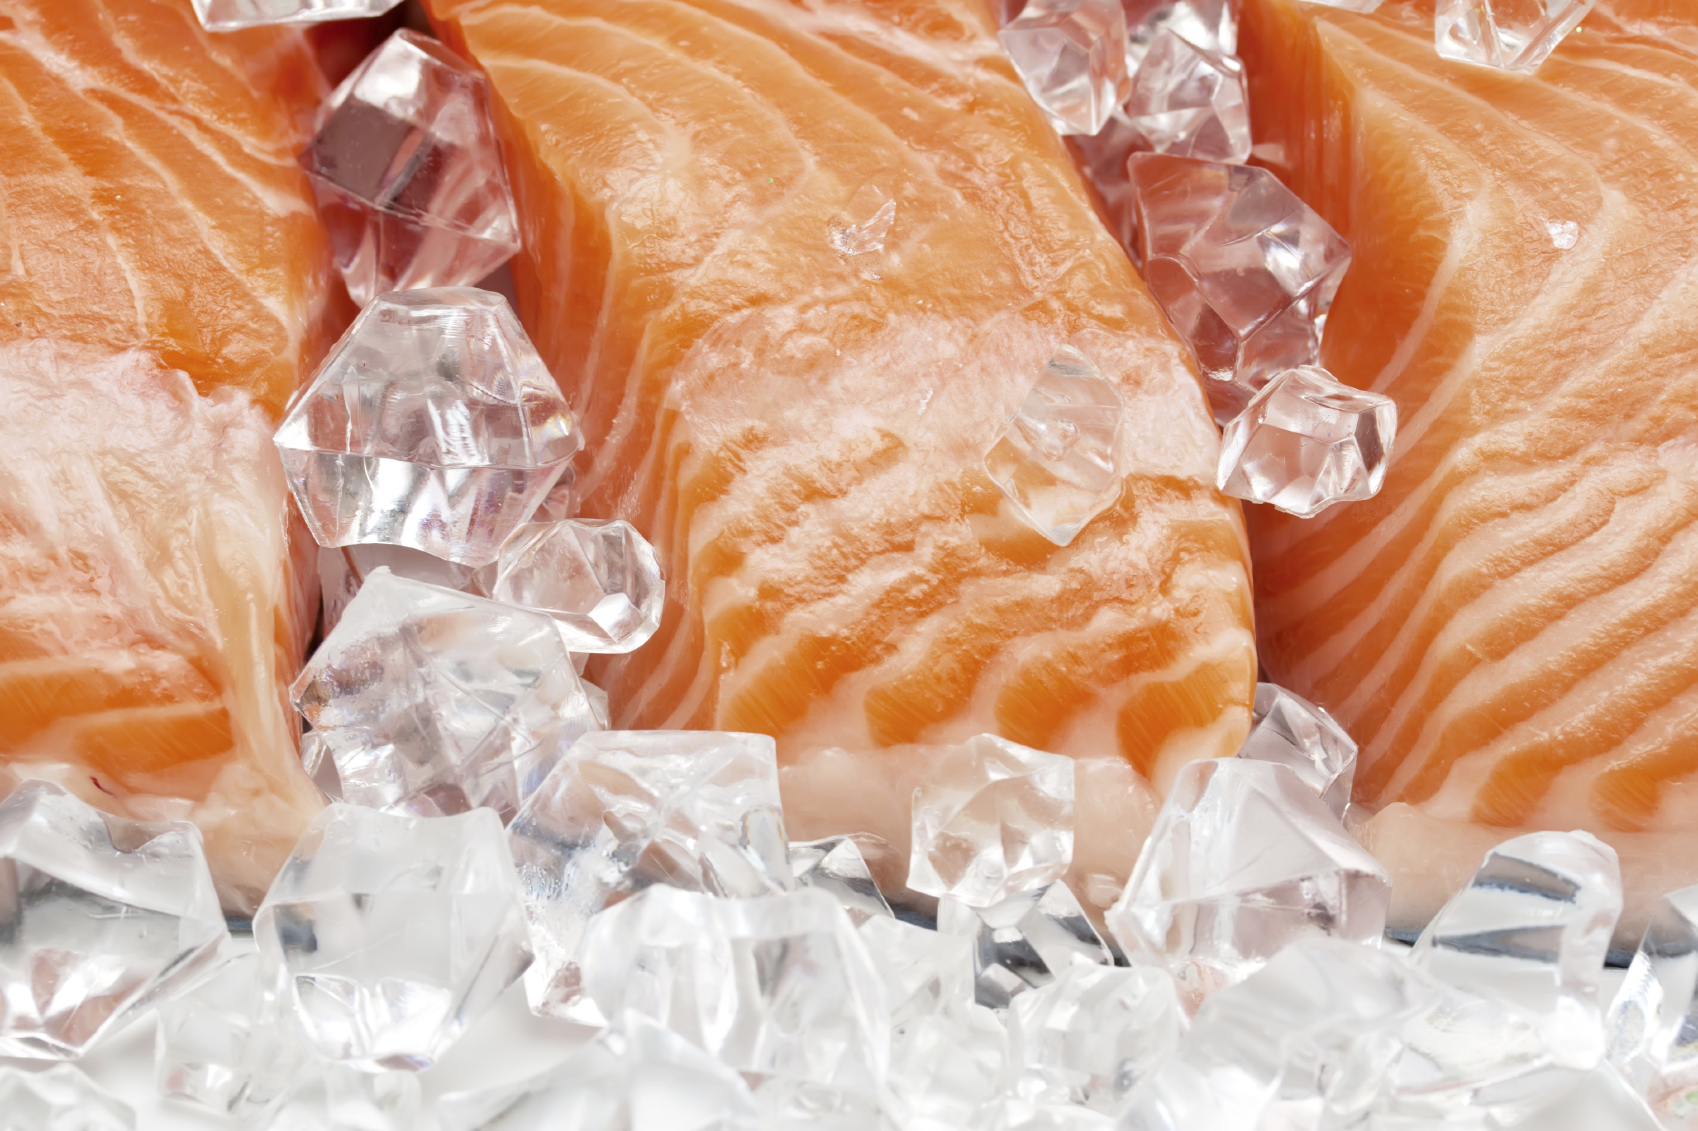 There are a lot of misconceptions in the mainstream about dietary protein. But a new study shows that avoiding it may be putting you at major risk for a stroke.